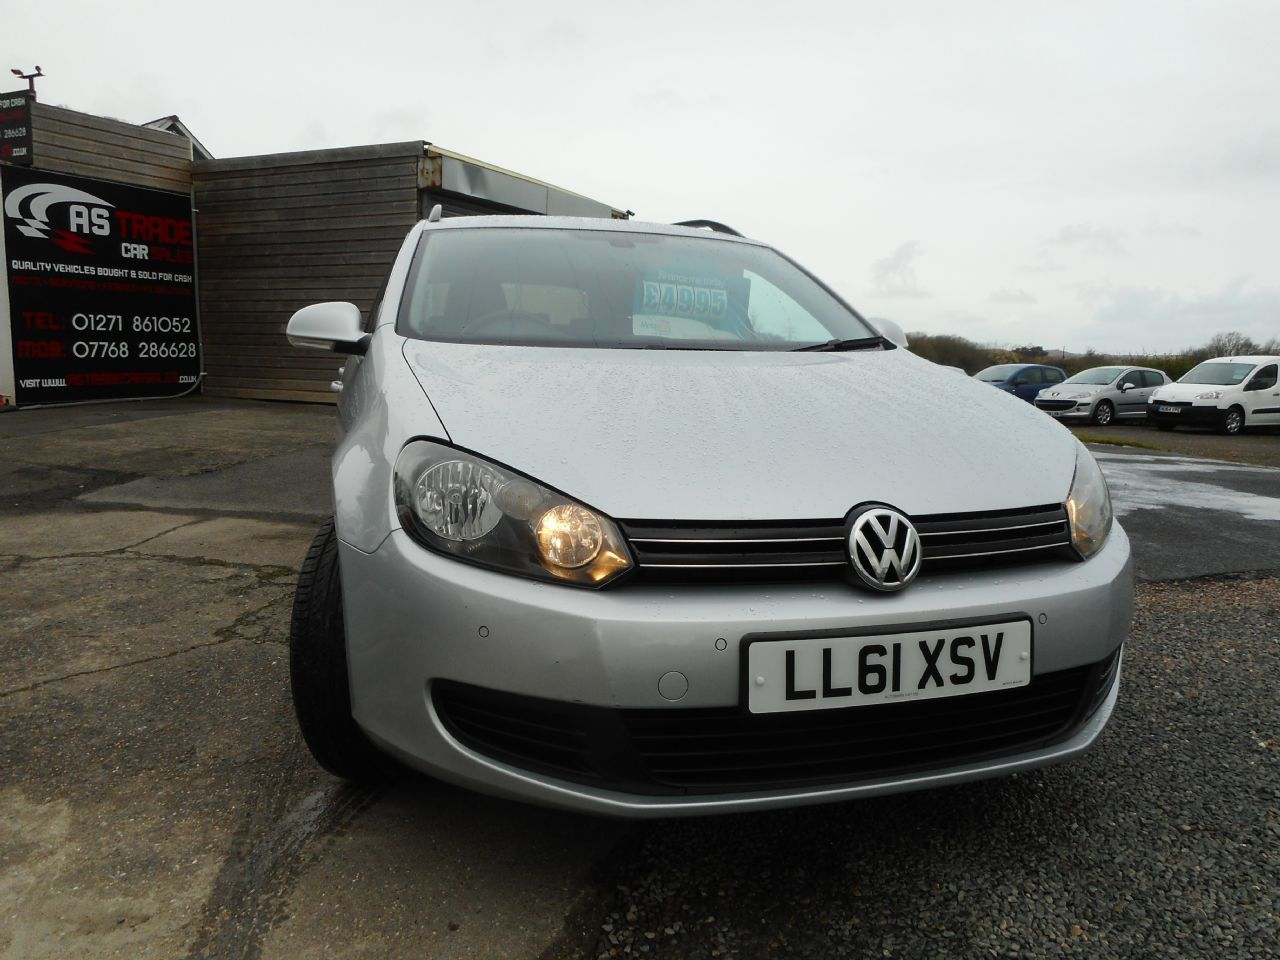 VOLKSWAGENGOLFSE 1.6 TDI 105PS BlueMotion Tech for sale